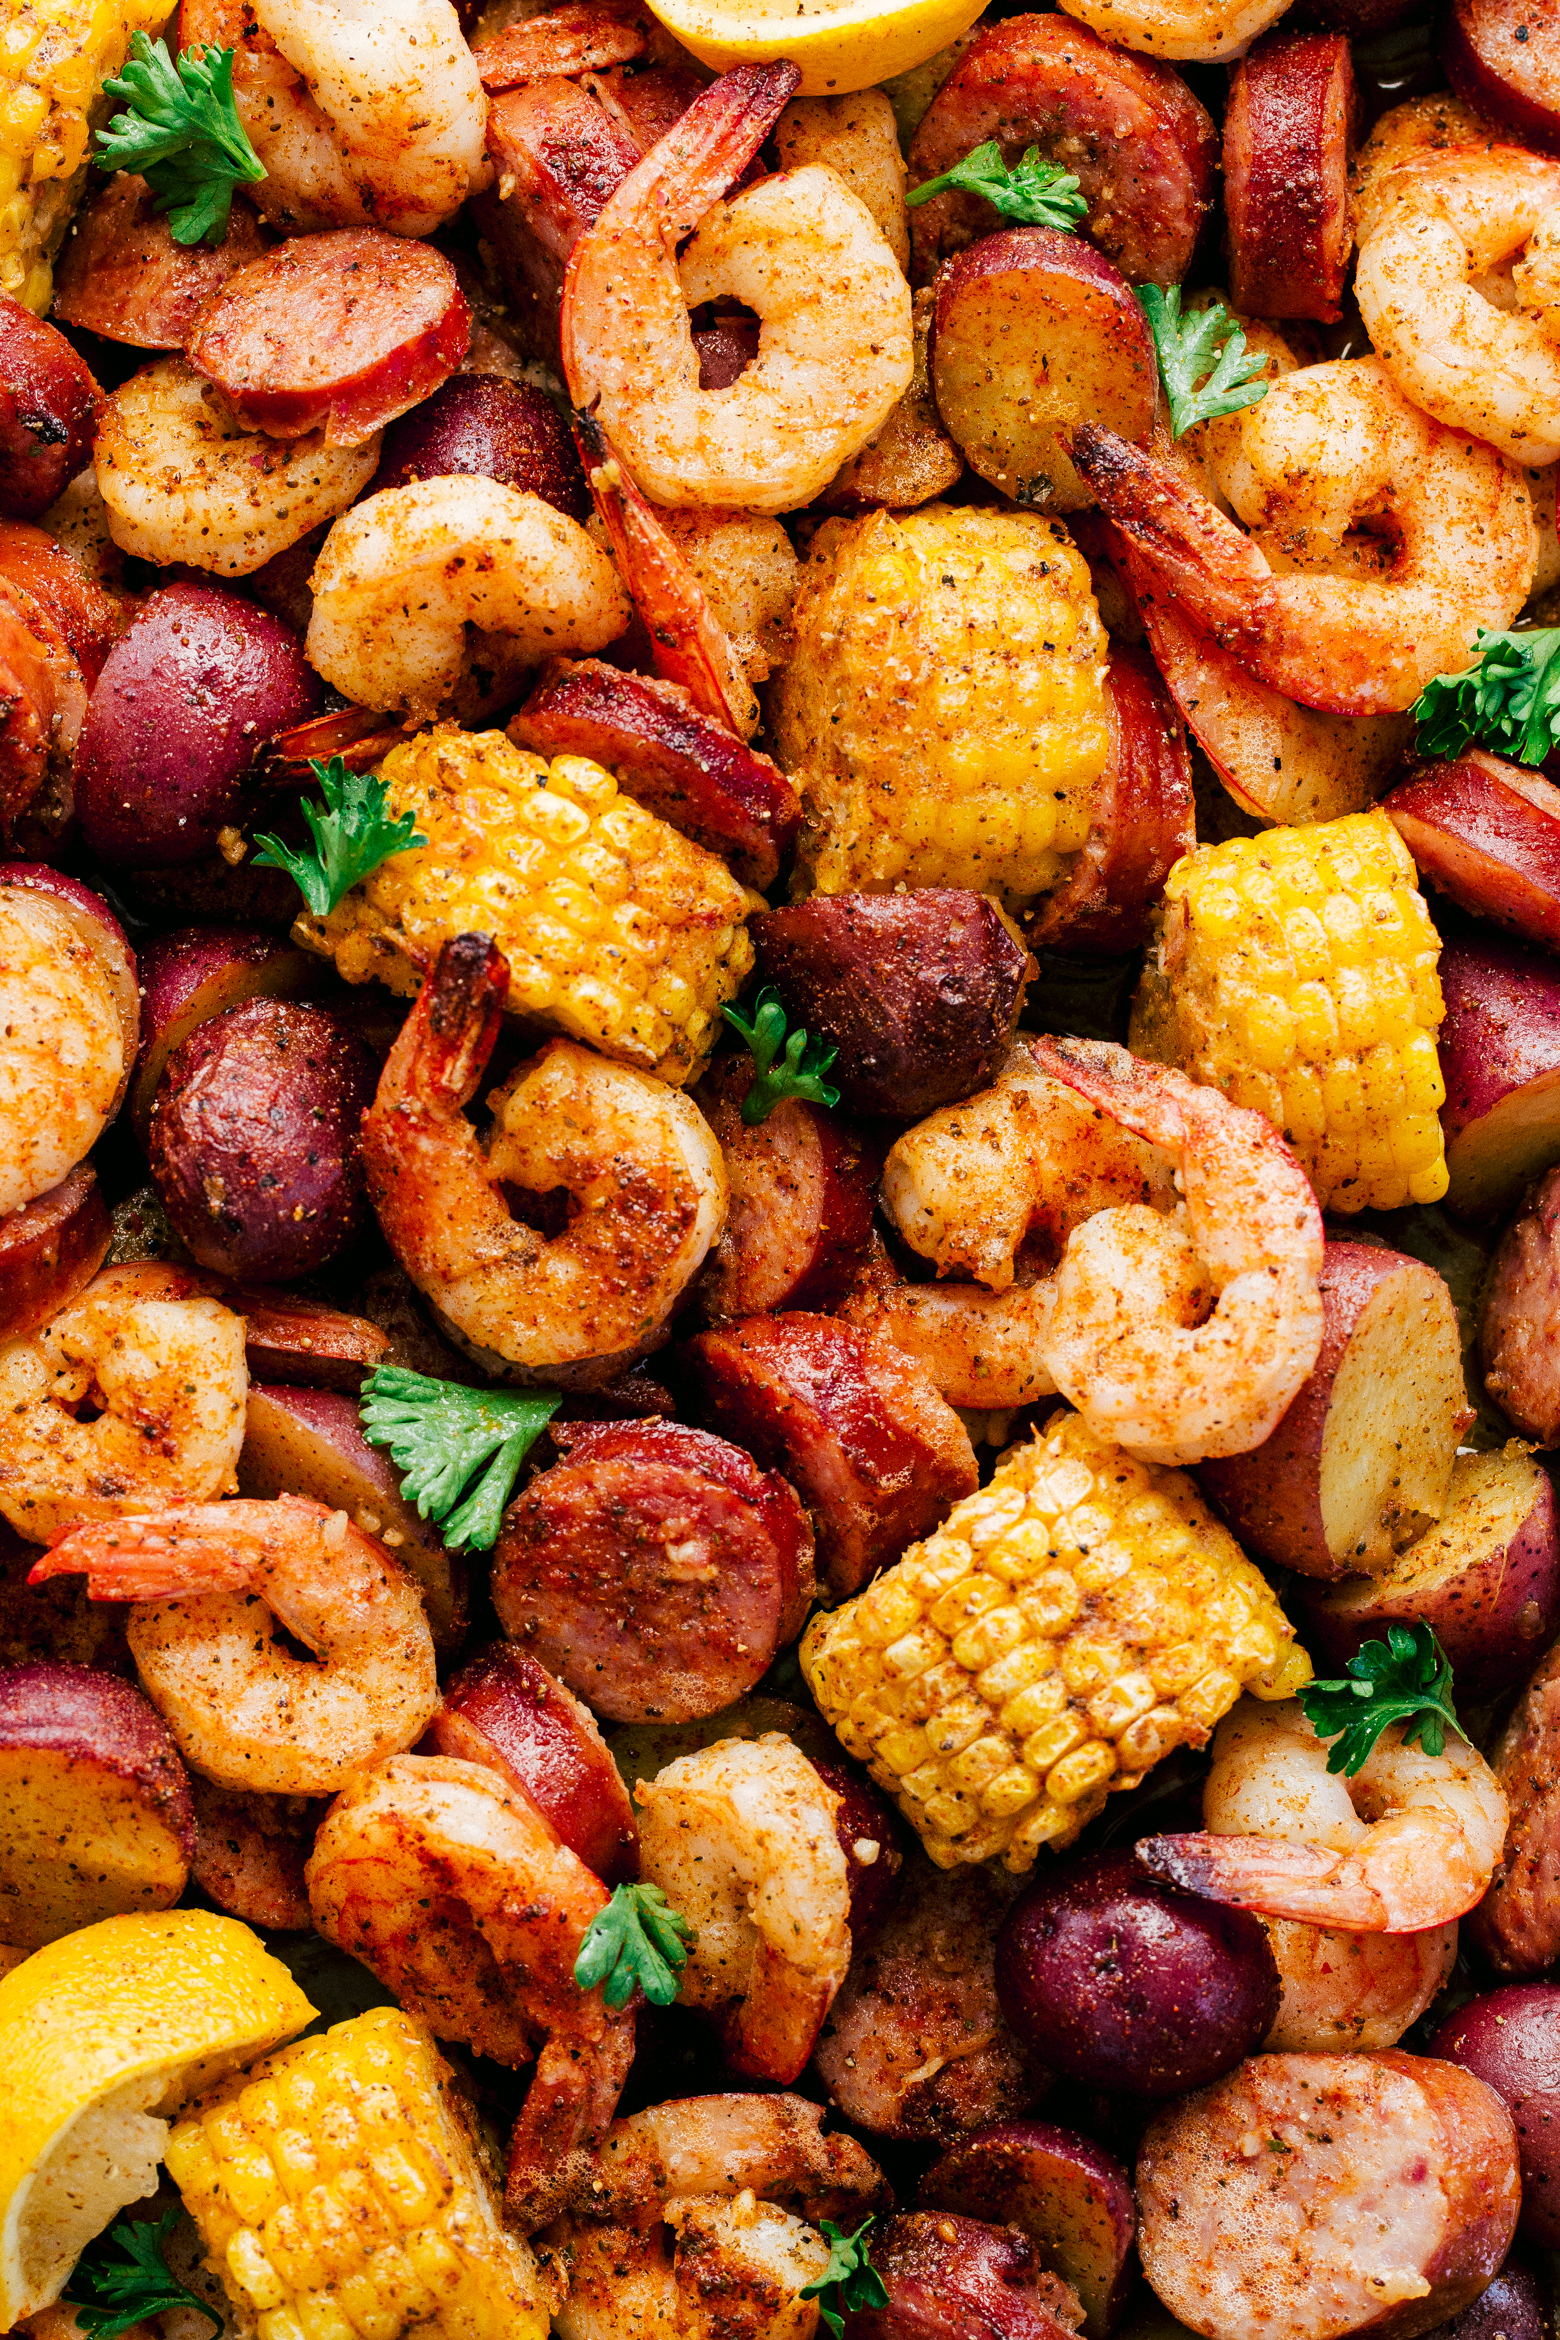 Garlic shrimp boil made in a sheet pan with sausage, corn, and red potatoes by The Food Cafe.